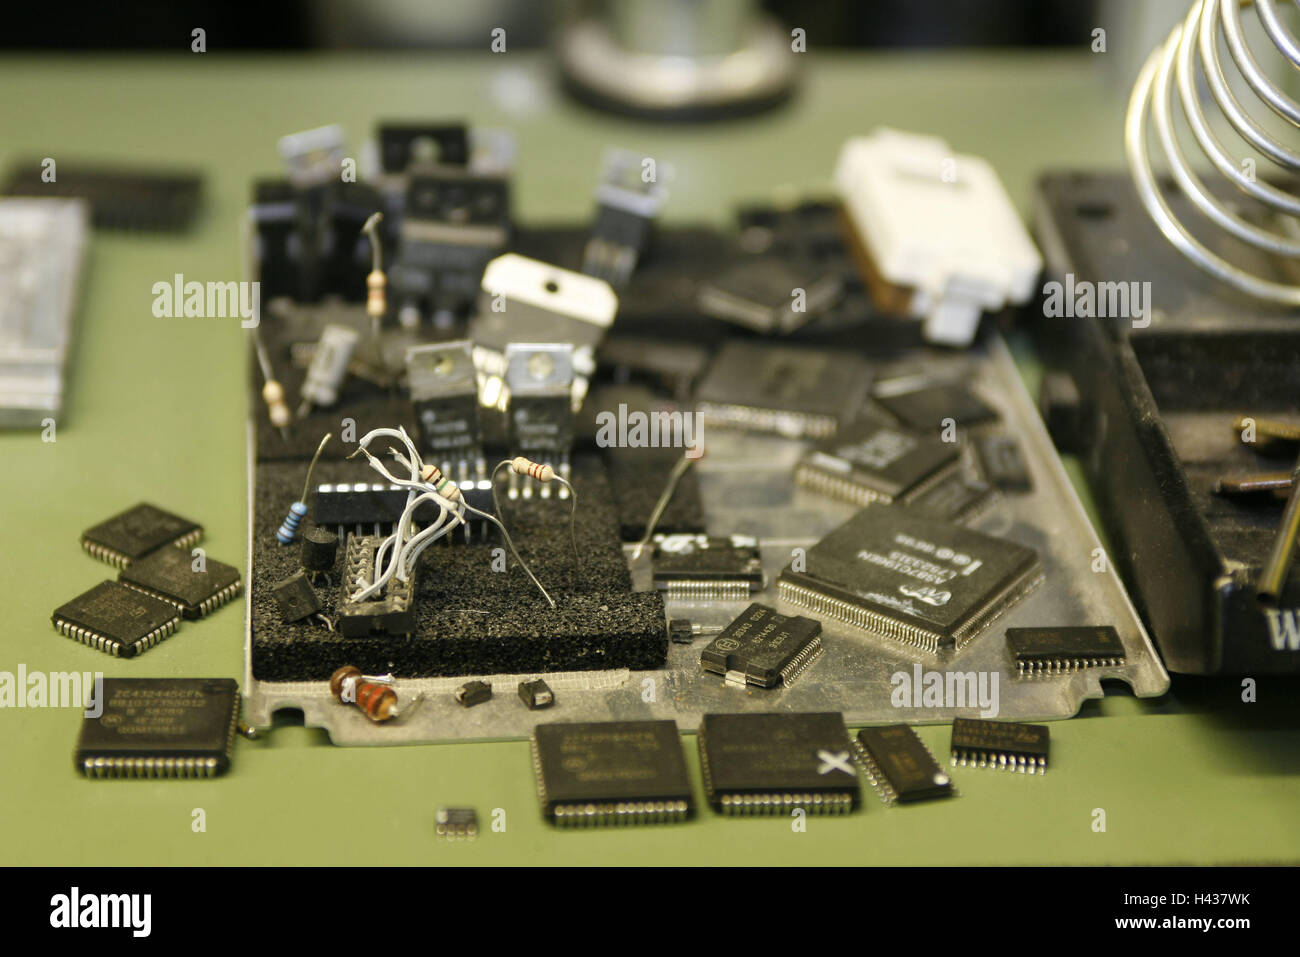 Electronic Waste Recycling Stock Photos Scrap Circuit Board Machine Computer Metal Remains Crisps Boards